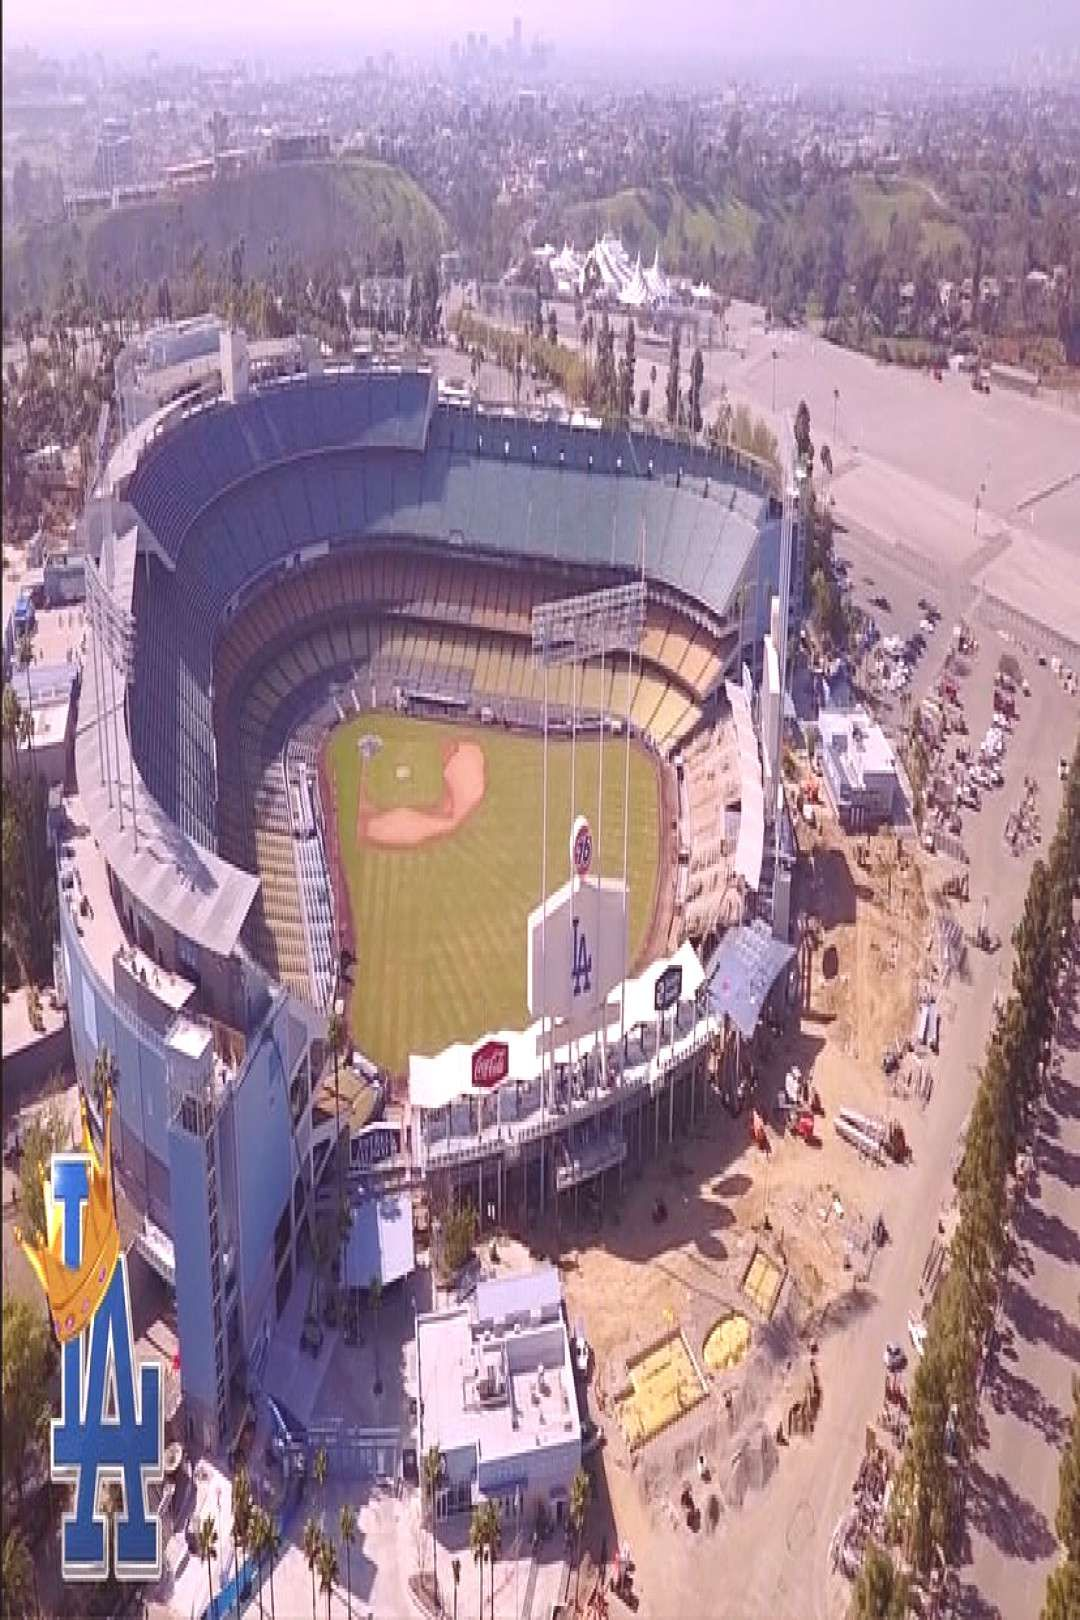 Renovations Continue Stadium Outdoor Dodger Chavez Ravine People Make More The Loo One And To The D In 2020 Dodger Stadium Major League Baseball Dodgers